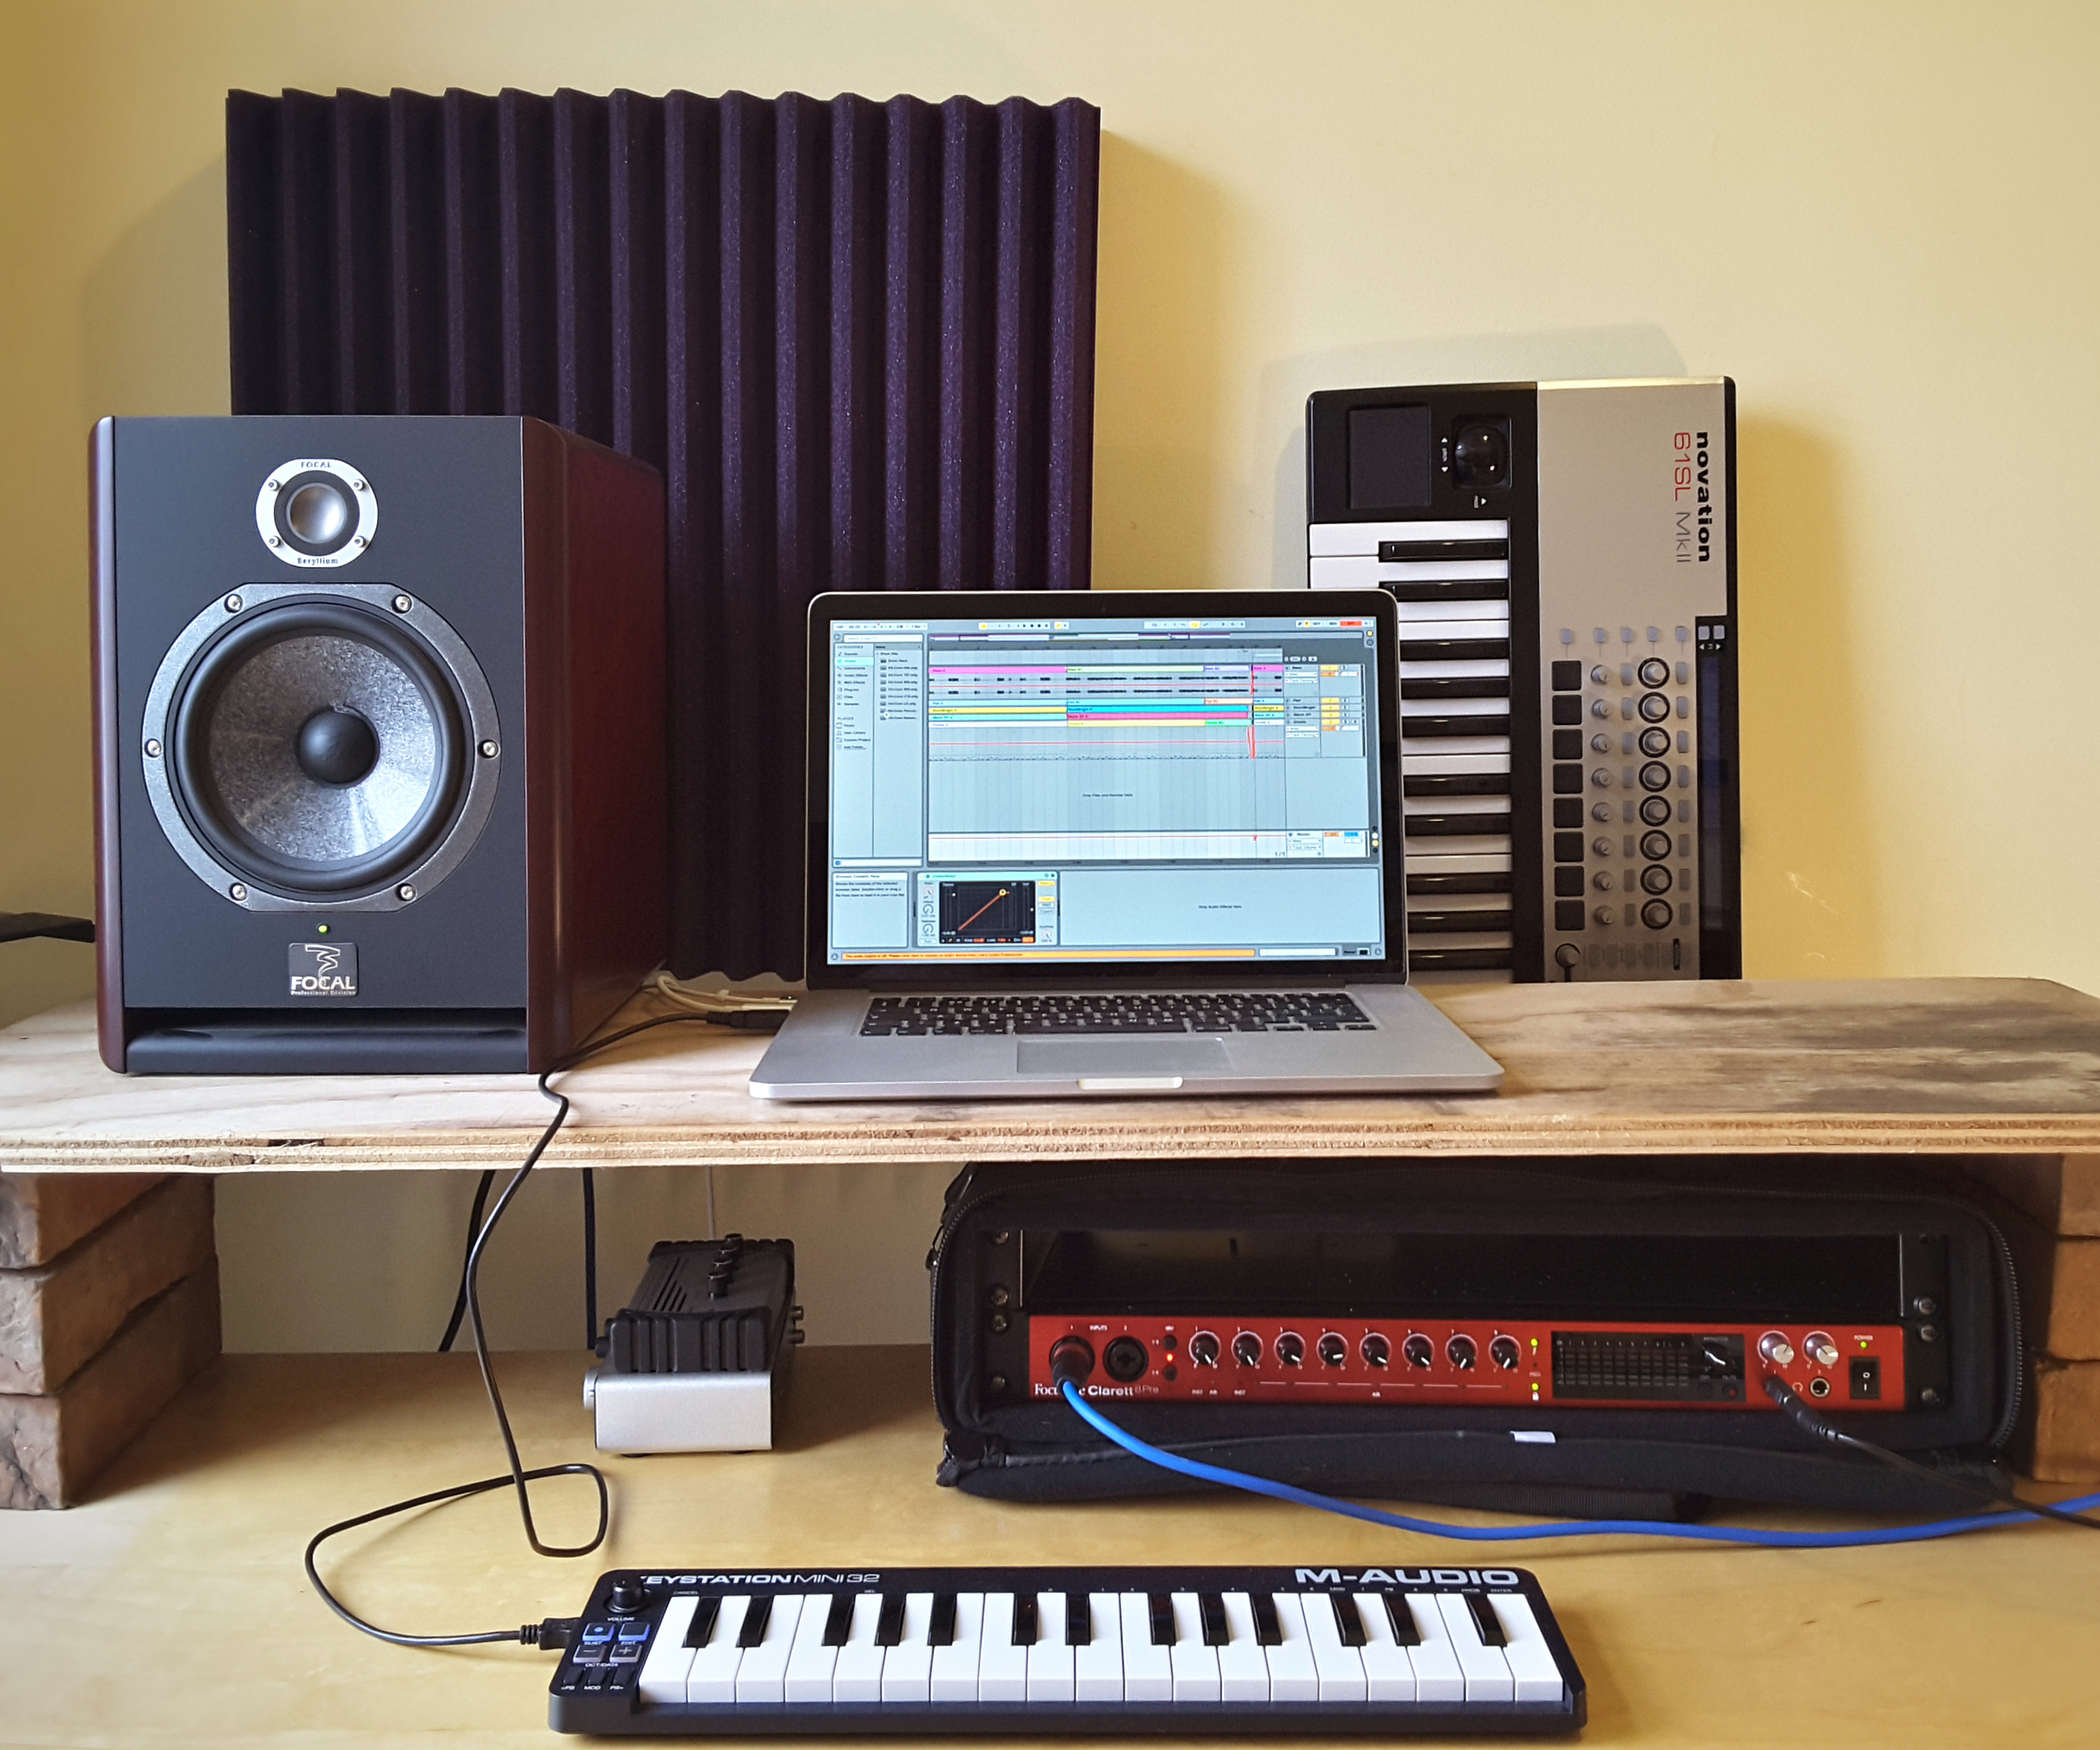 Create, finish & perform music with Ableton Live    Writing, recording, sequencing, mixing and mastering using the industry-leading Ableton Live software, with the producer, songwriter and engineer Sie Medway-Smith.